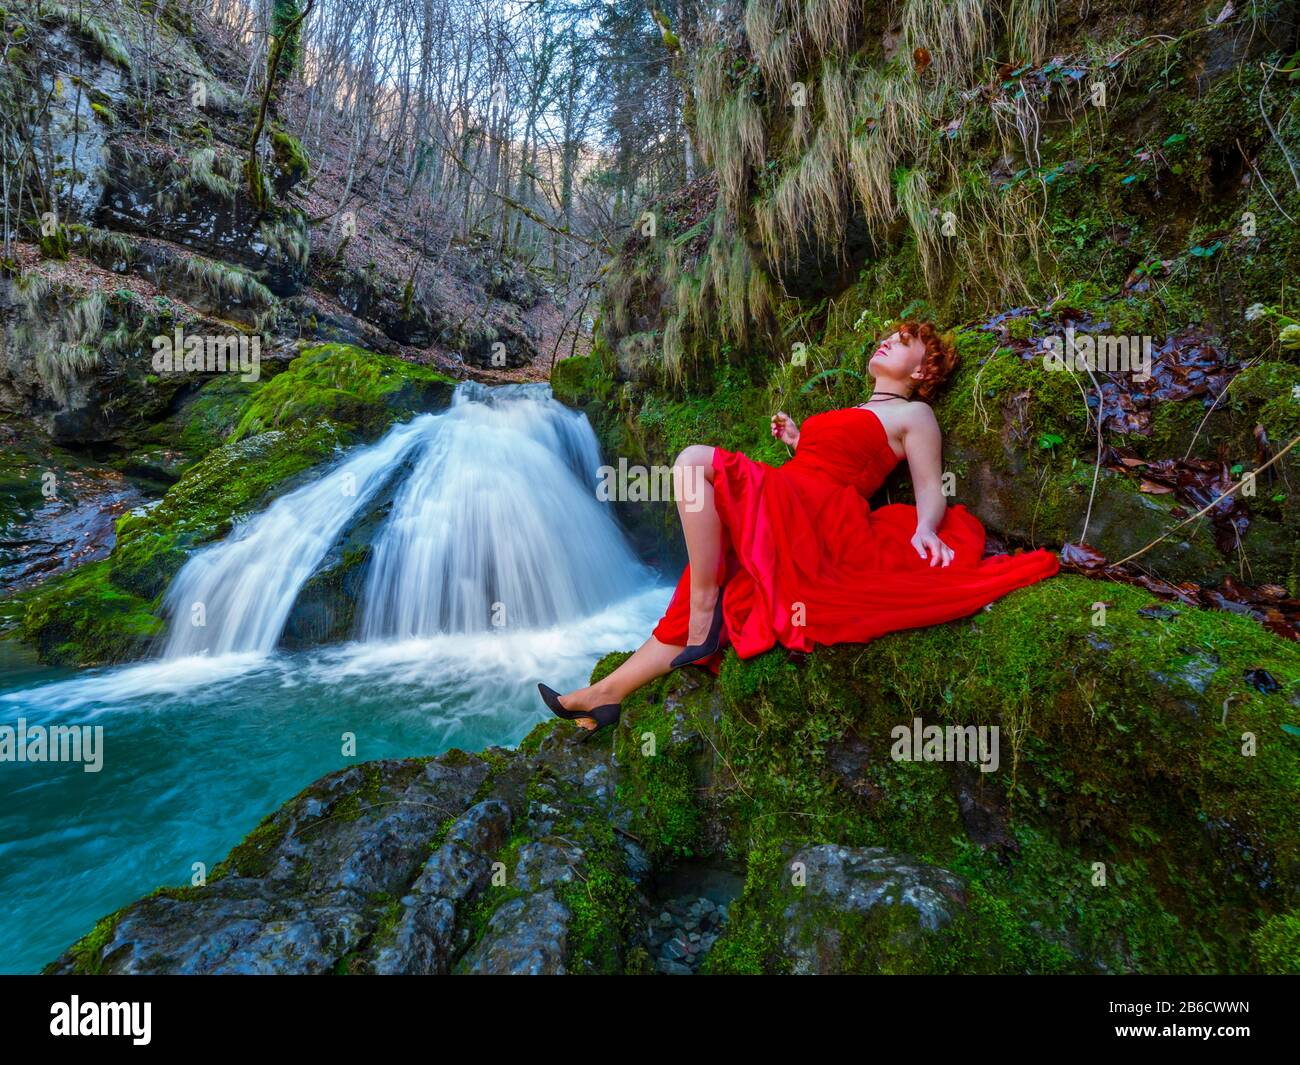 Fanciful woman wearing long Red dress legs heels in nature reclining near flowing water waterfall Green forest Stock Photo